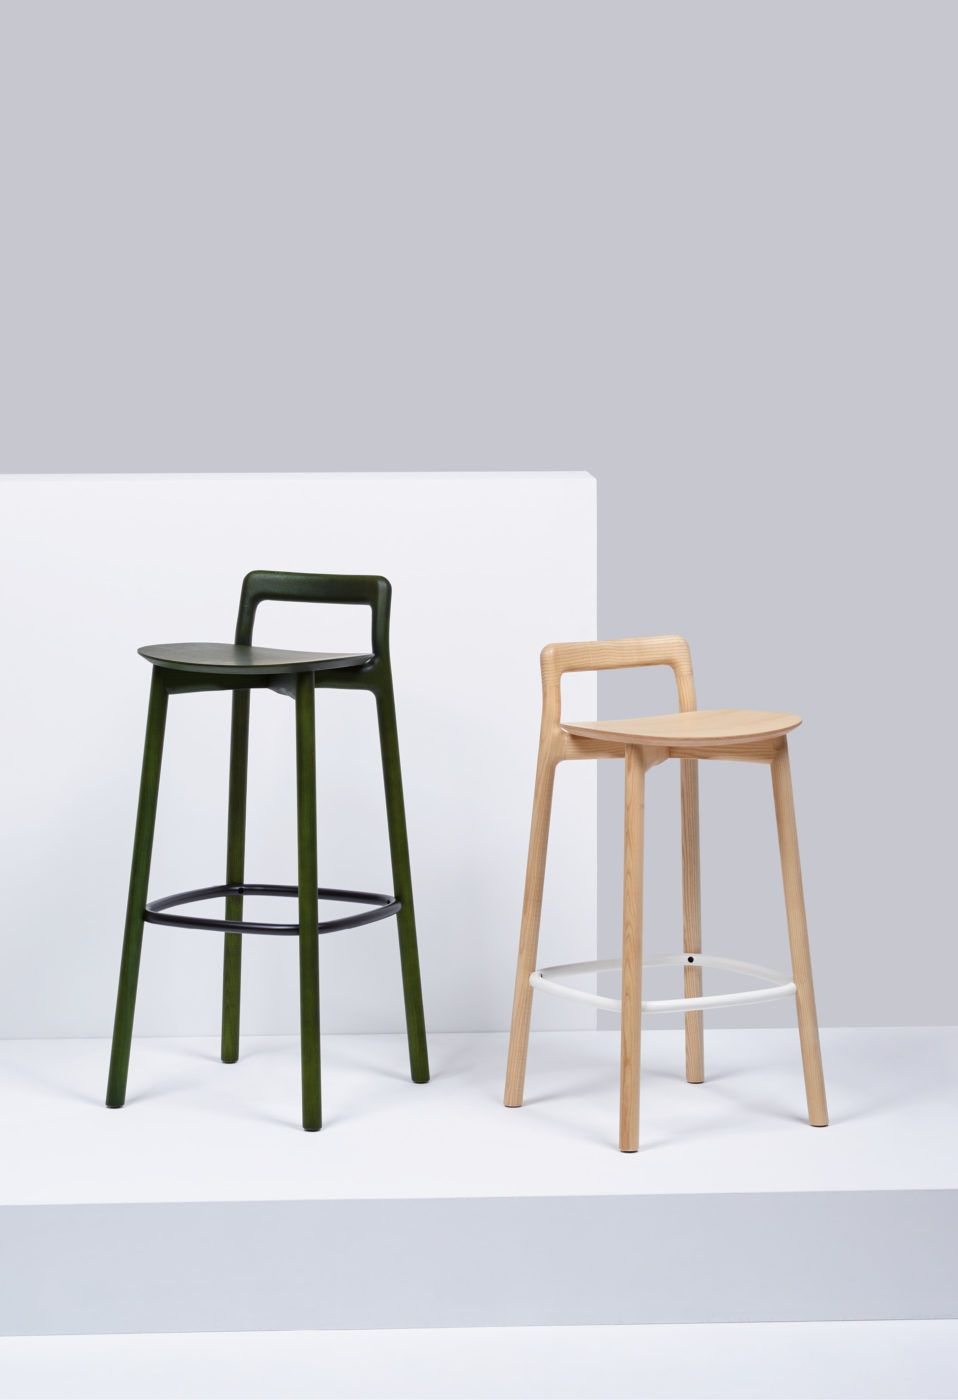 Branca Stool By Sam Hecht Kim Colin For Mattiazzi